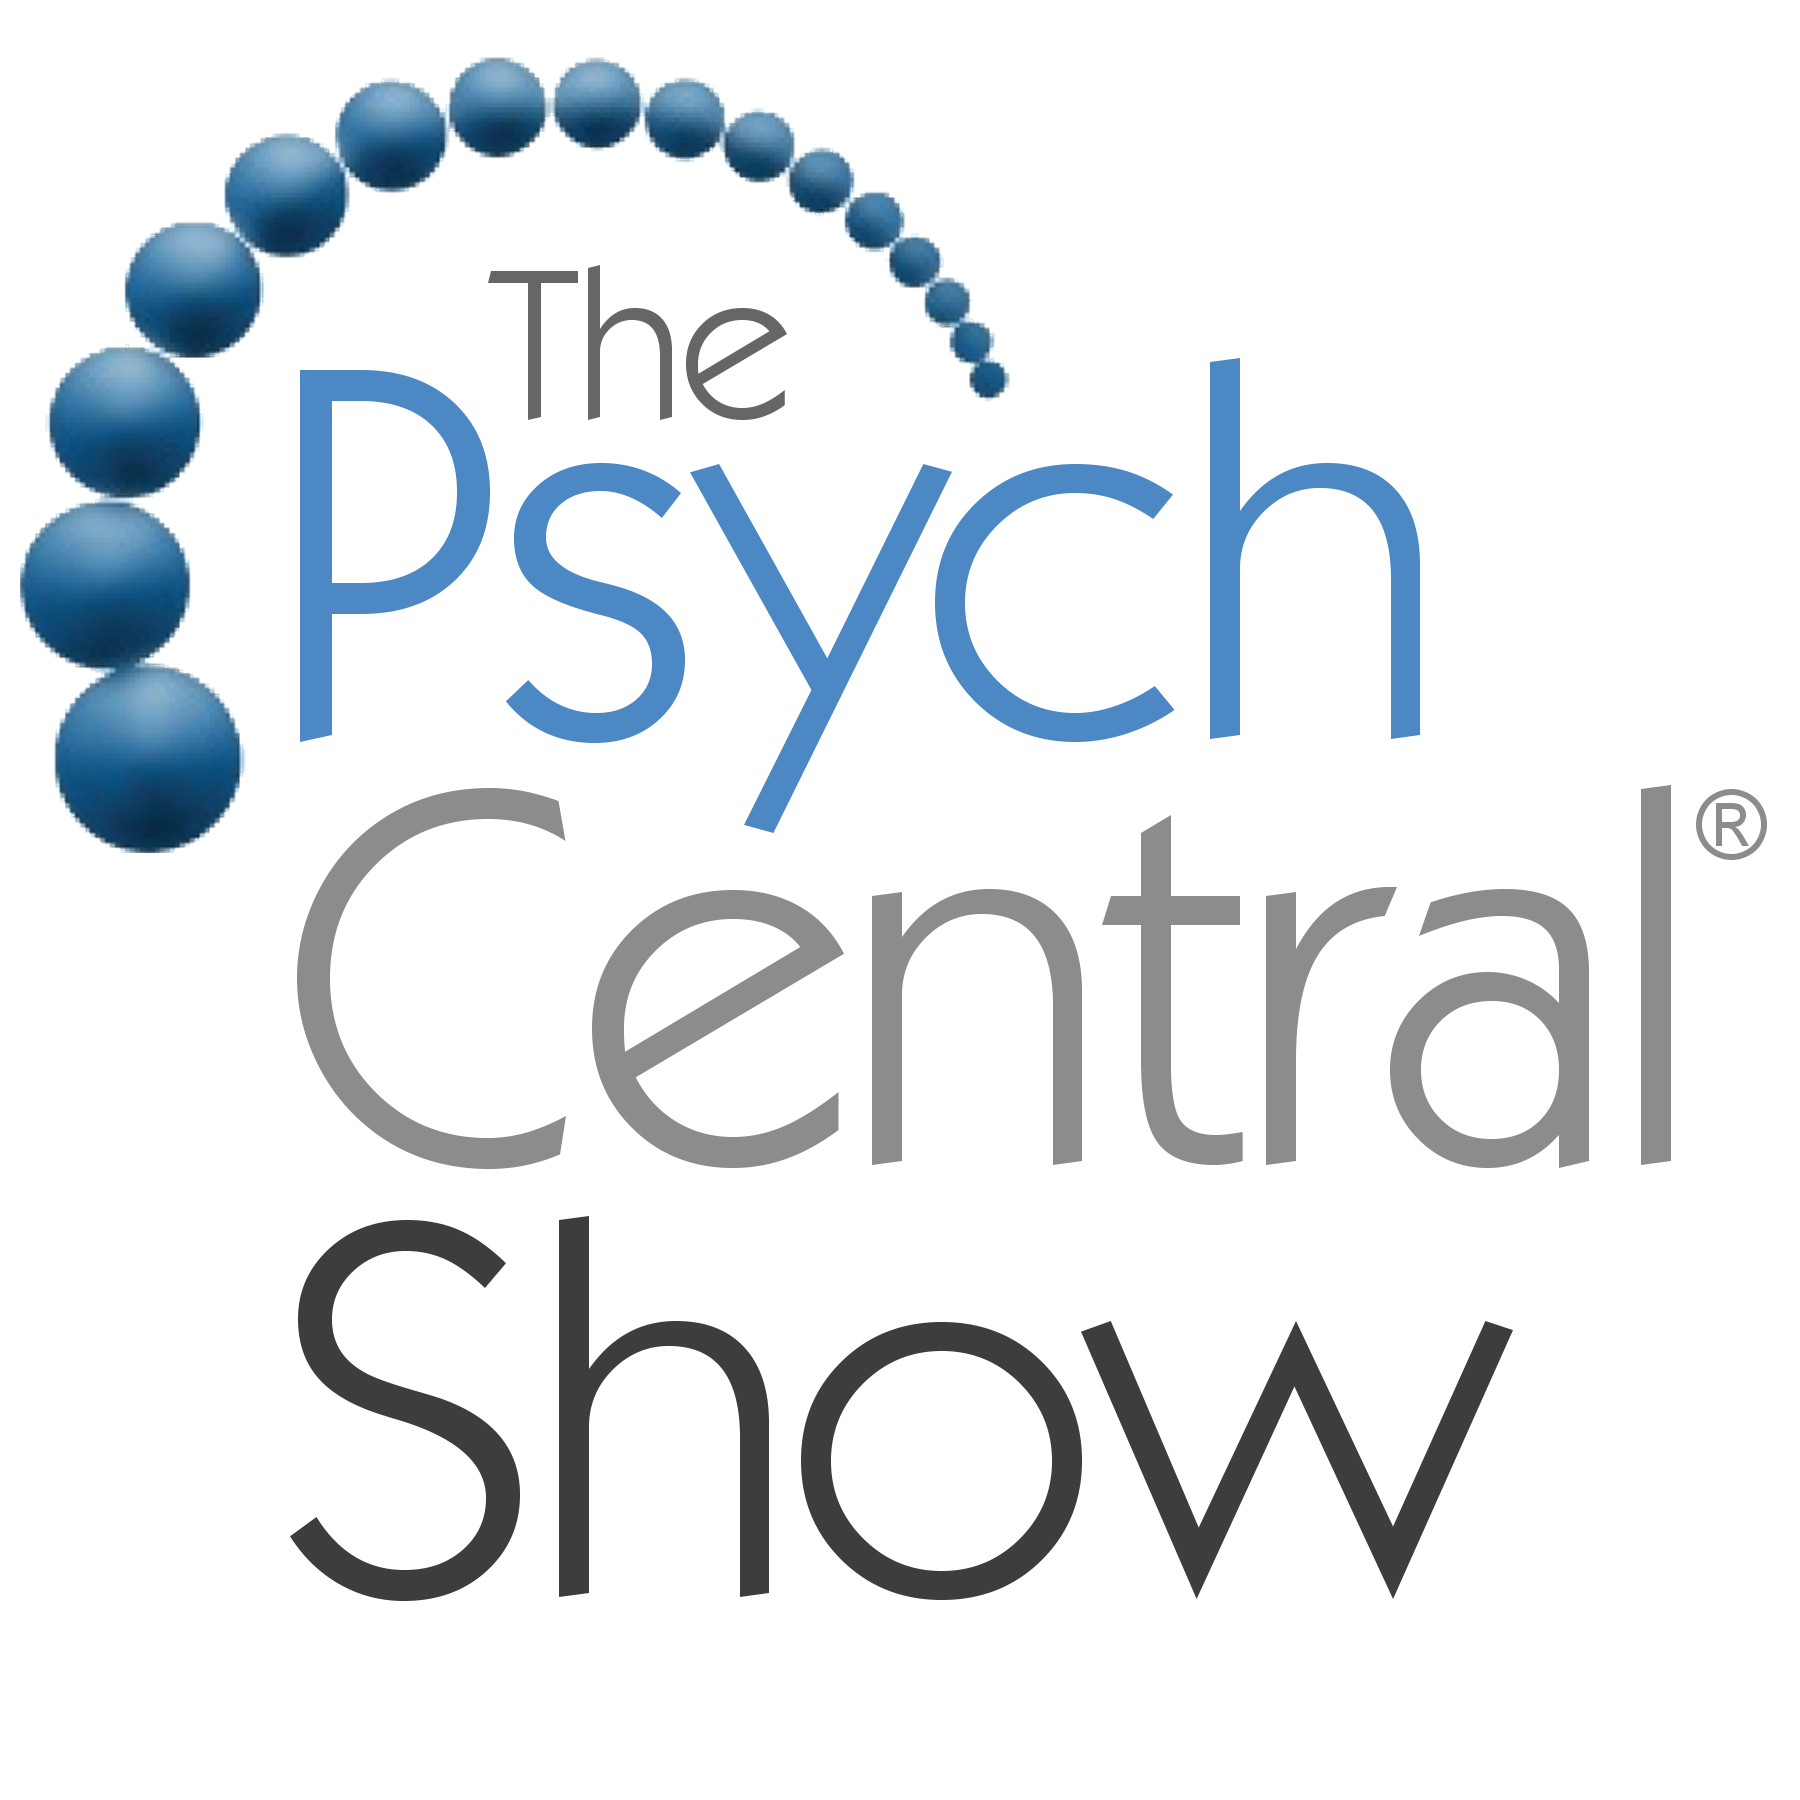 psych_central_show_2016_007.png